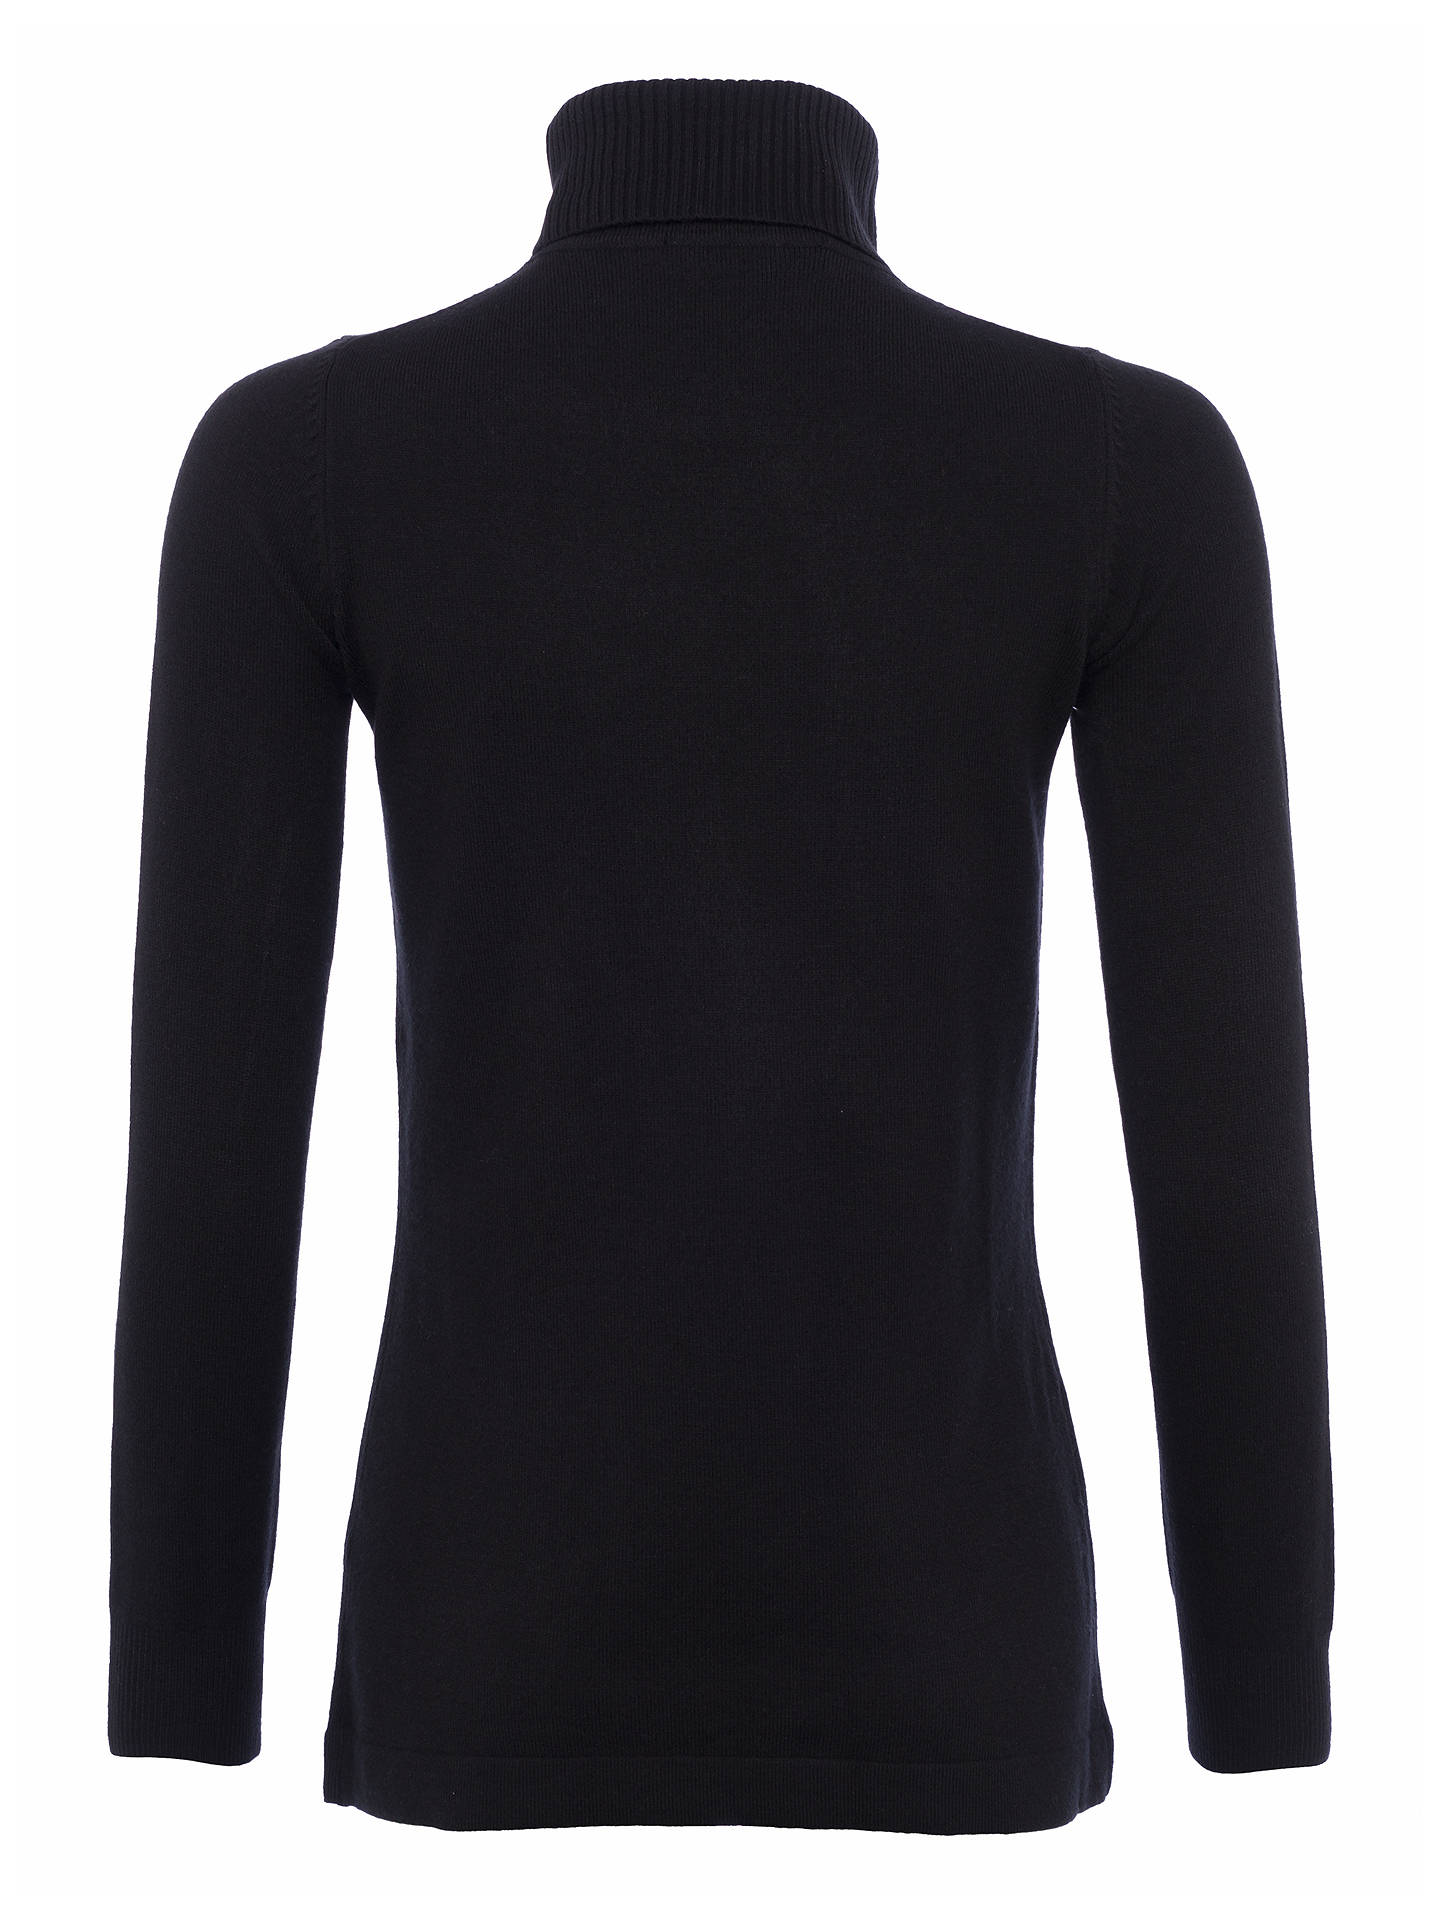 BuyFrench Connection Babysoft Solid Turtleneck Jumper, Black, XS Online at johnlewis.com